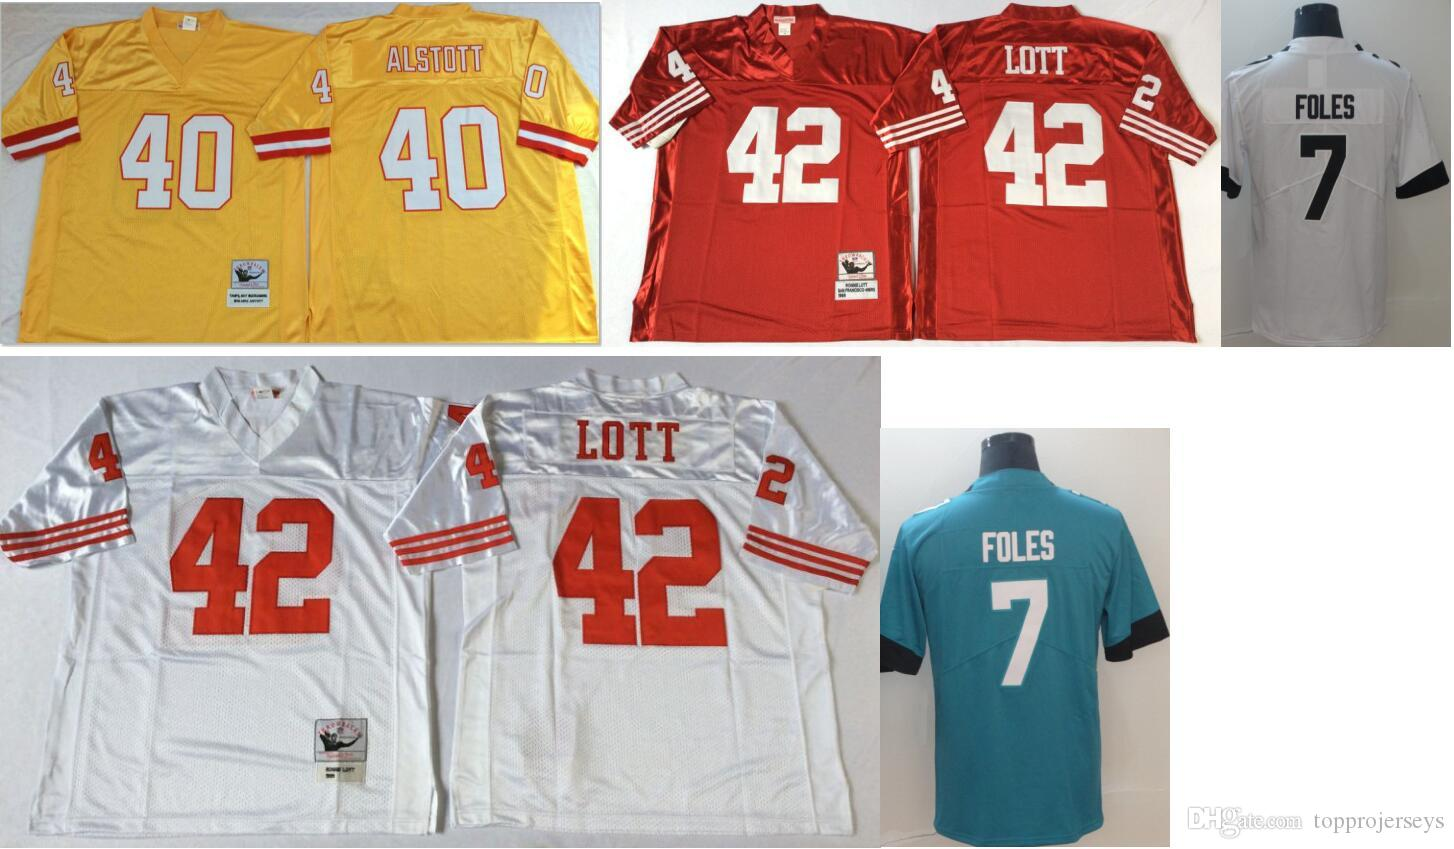 outlet store e0866 1e14c Tampa bay #40 Mike Alstott Jacksonville 7 Nick Foles Mens Vintage SF 42  Ronnie Lott College Color Rush Limited American Football Jerseys